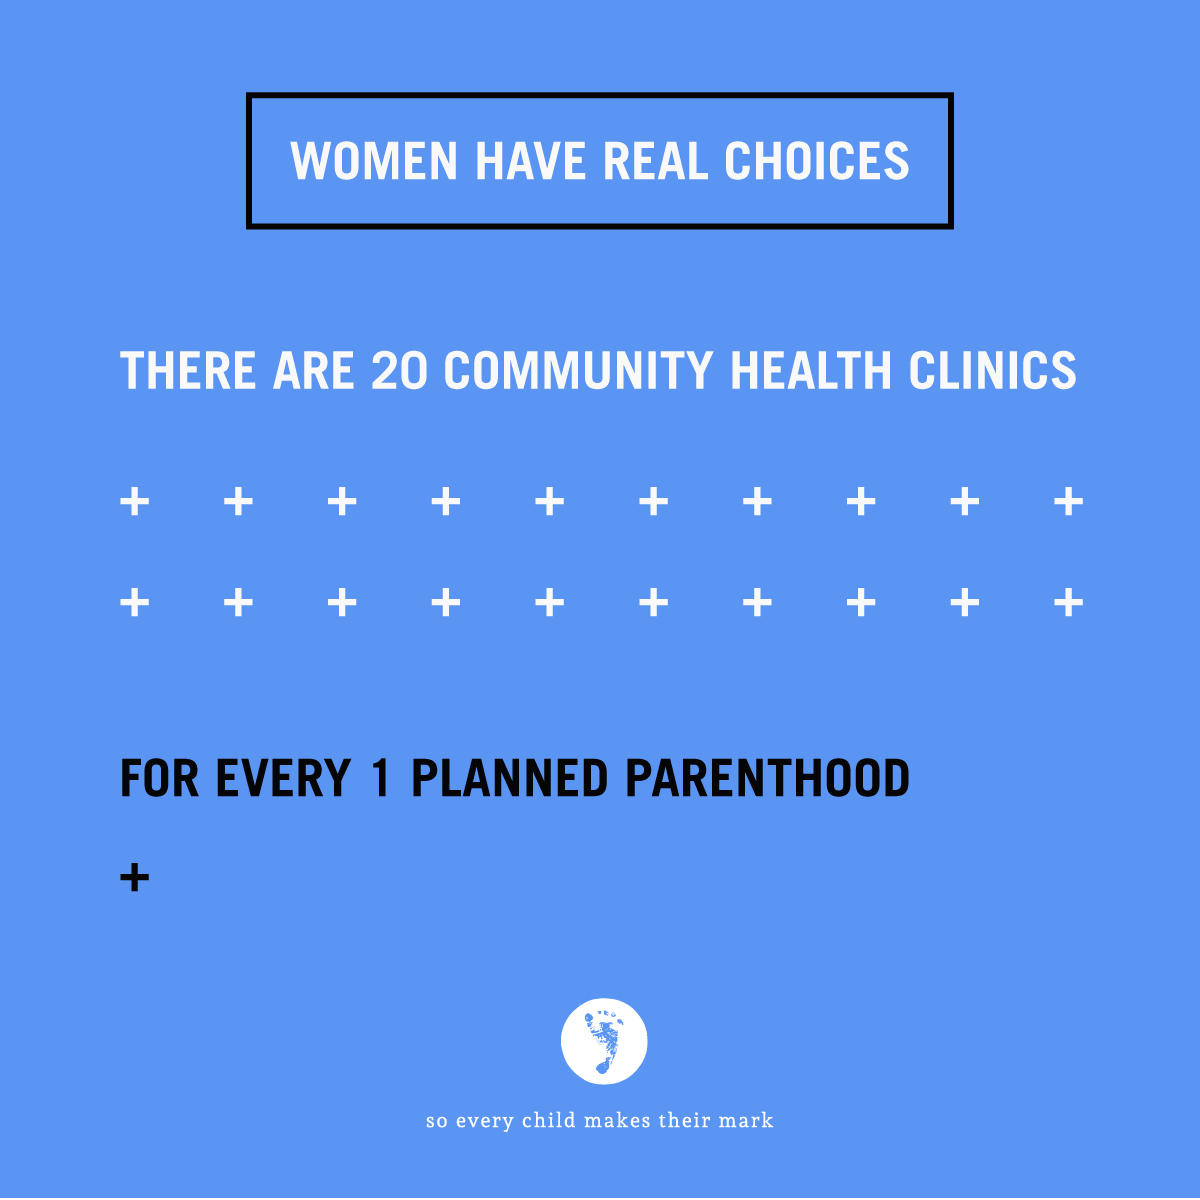 Important Statistic About Planned Parenthood